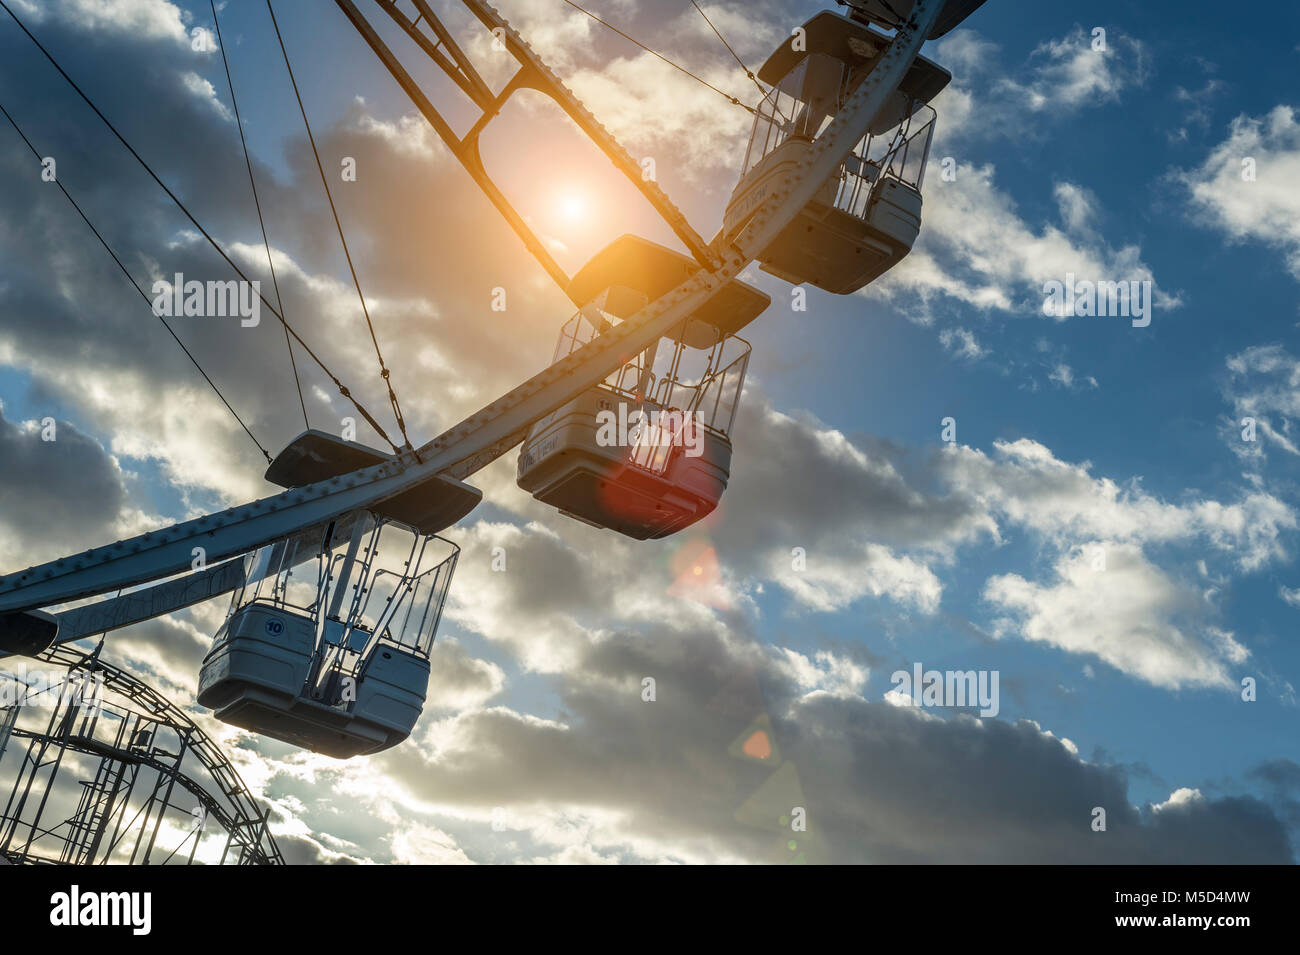 Large ferris wheel amusement park ride at Portsmouth waterfront - Stock Image